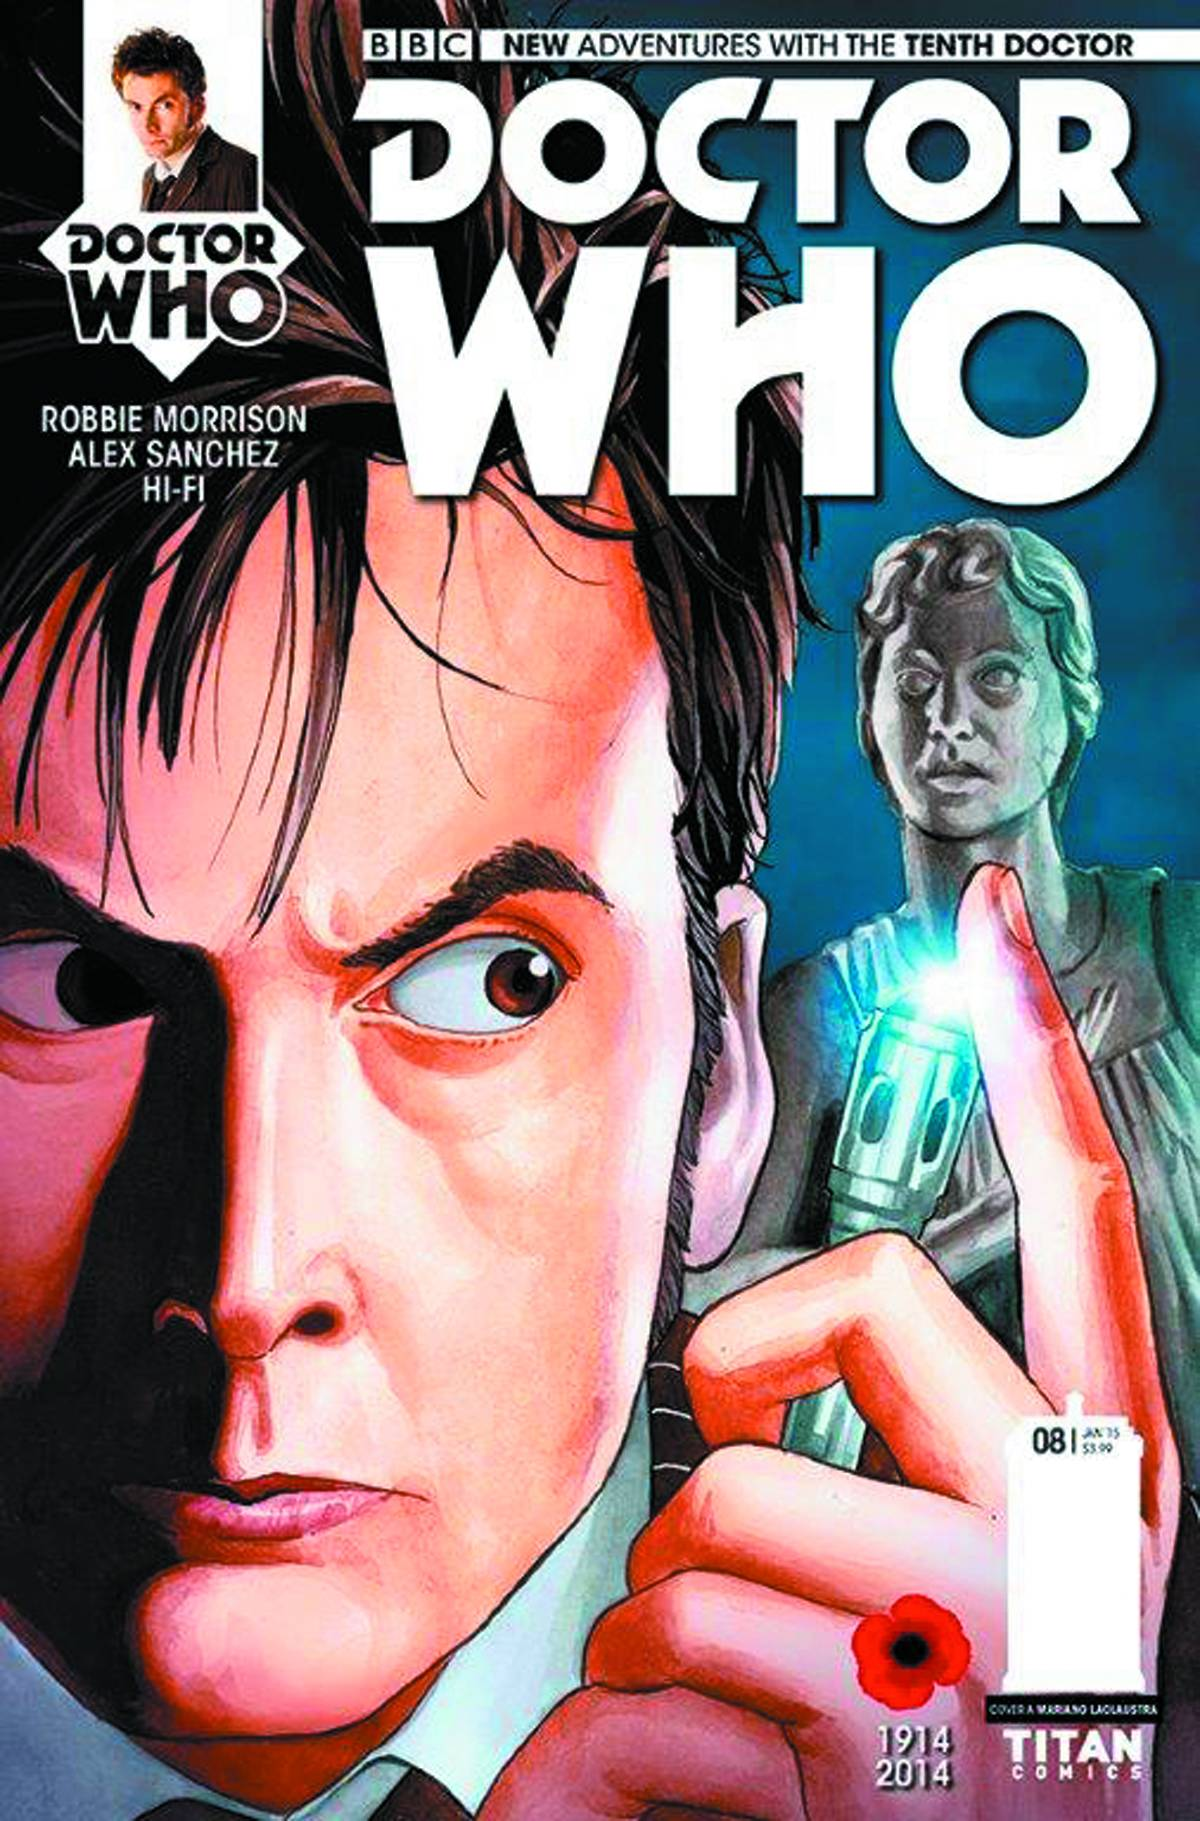 Doctor Who: The 10th Doctor #8